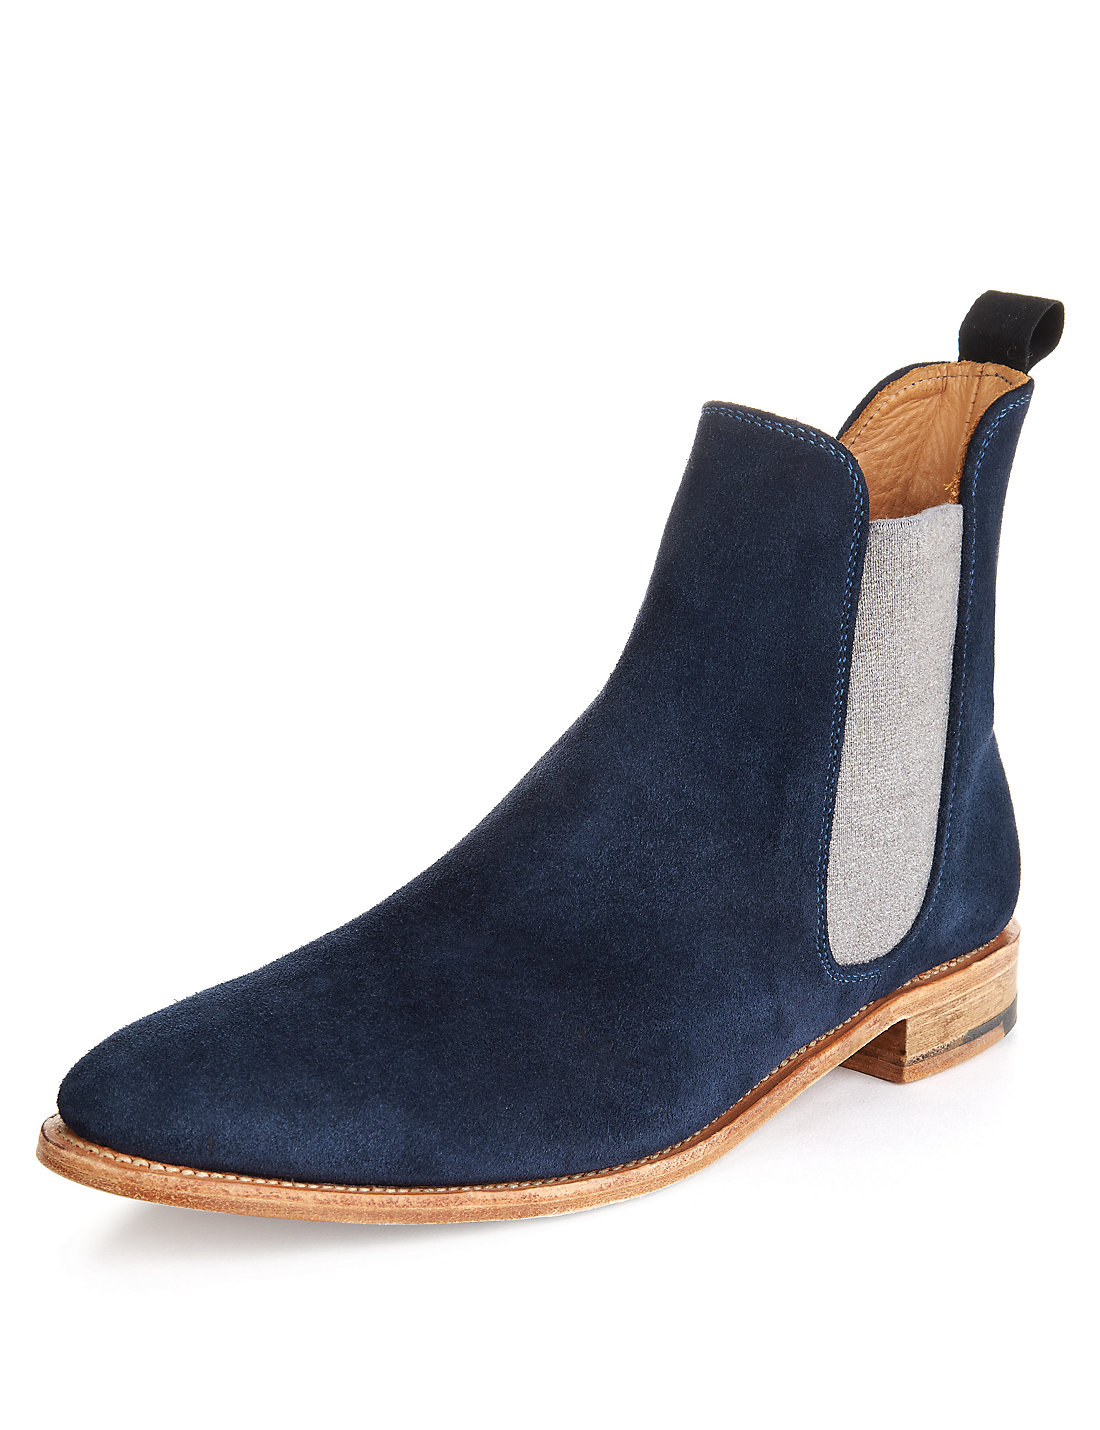 7ca69d96c21 Handmade mens chelsea boots, Men Fashion blue ankle-high suede leather boot